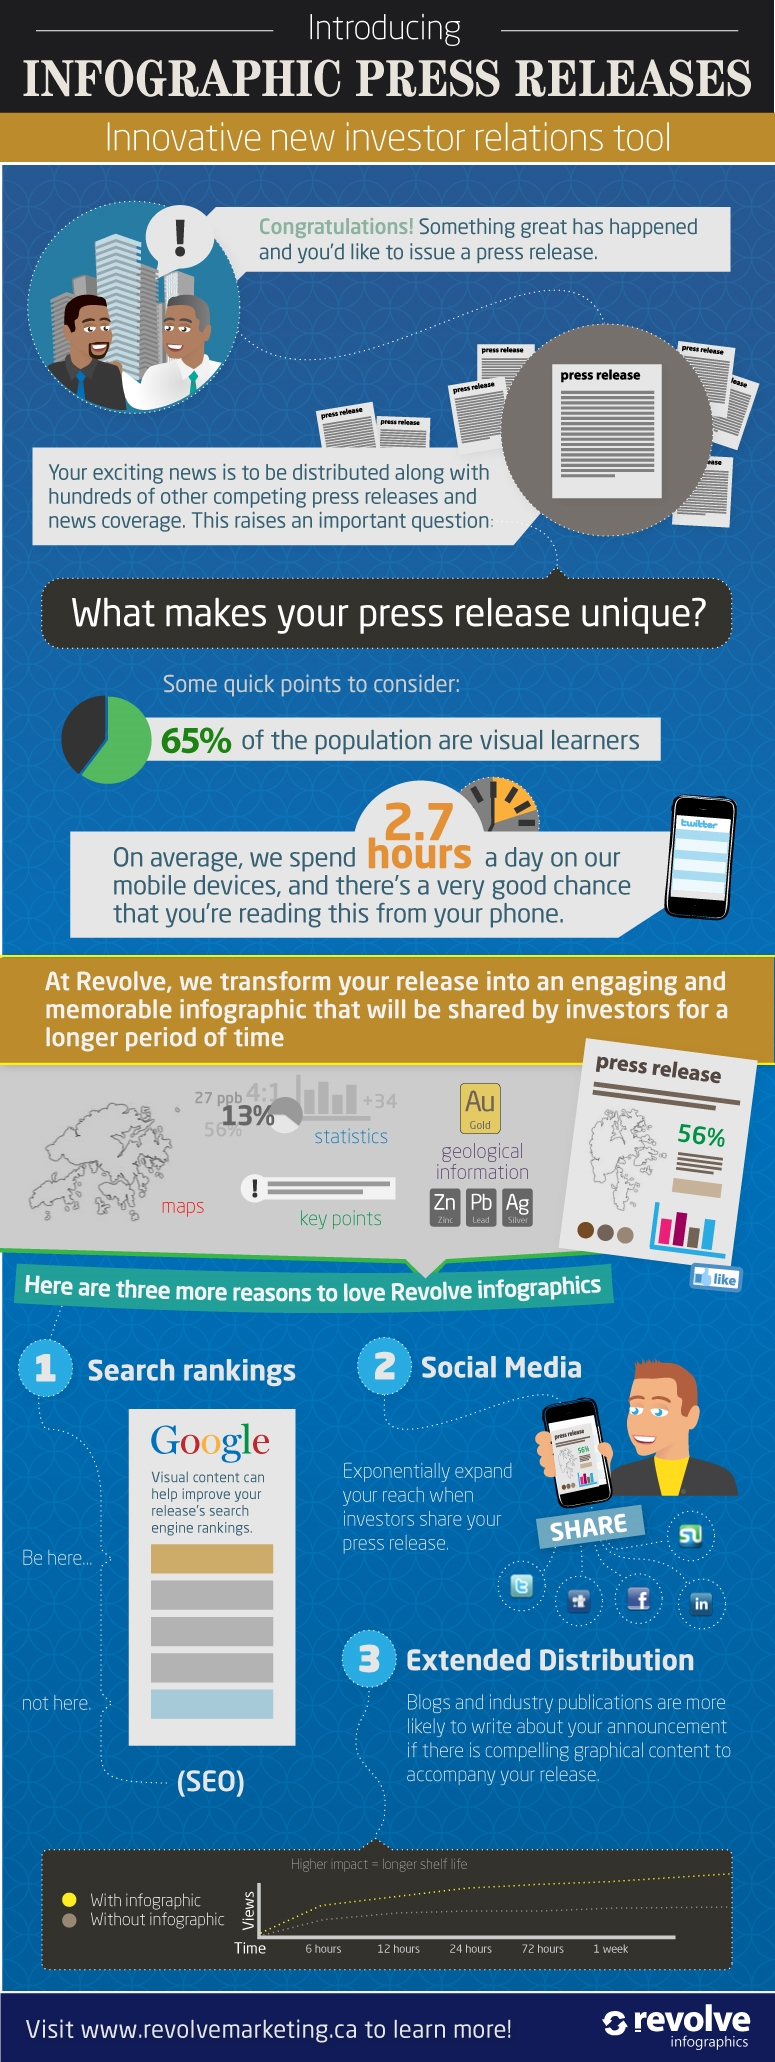 use-the-power-of-press-releases-to-promote-your-business-INFOGRAPHIC